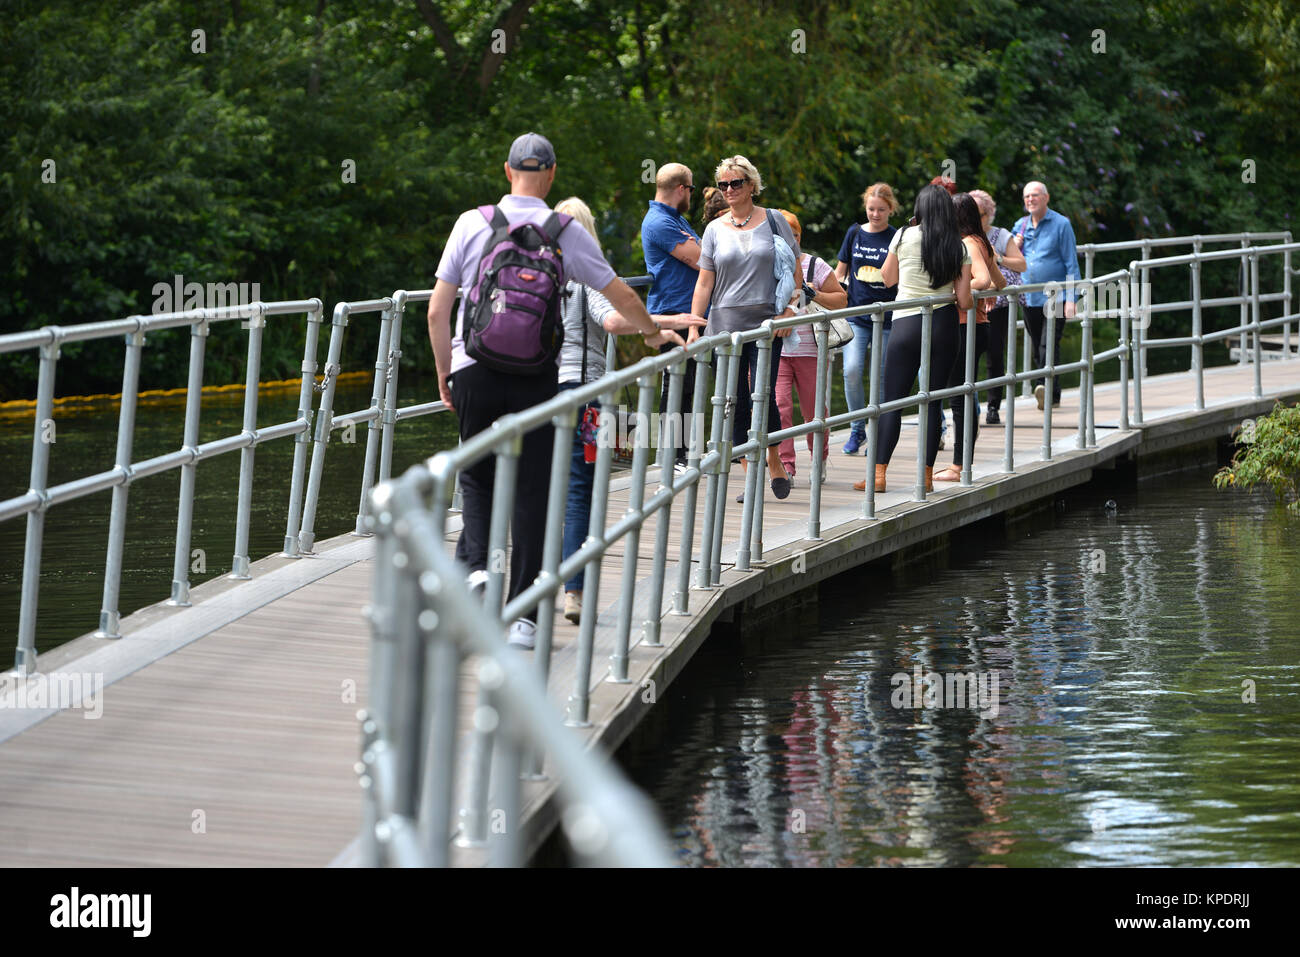 People walking along the redeveloped Regent's Canal Towpath, Kings Cross, London. - Stock Image